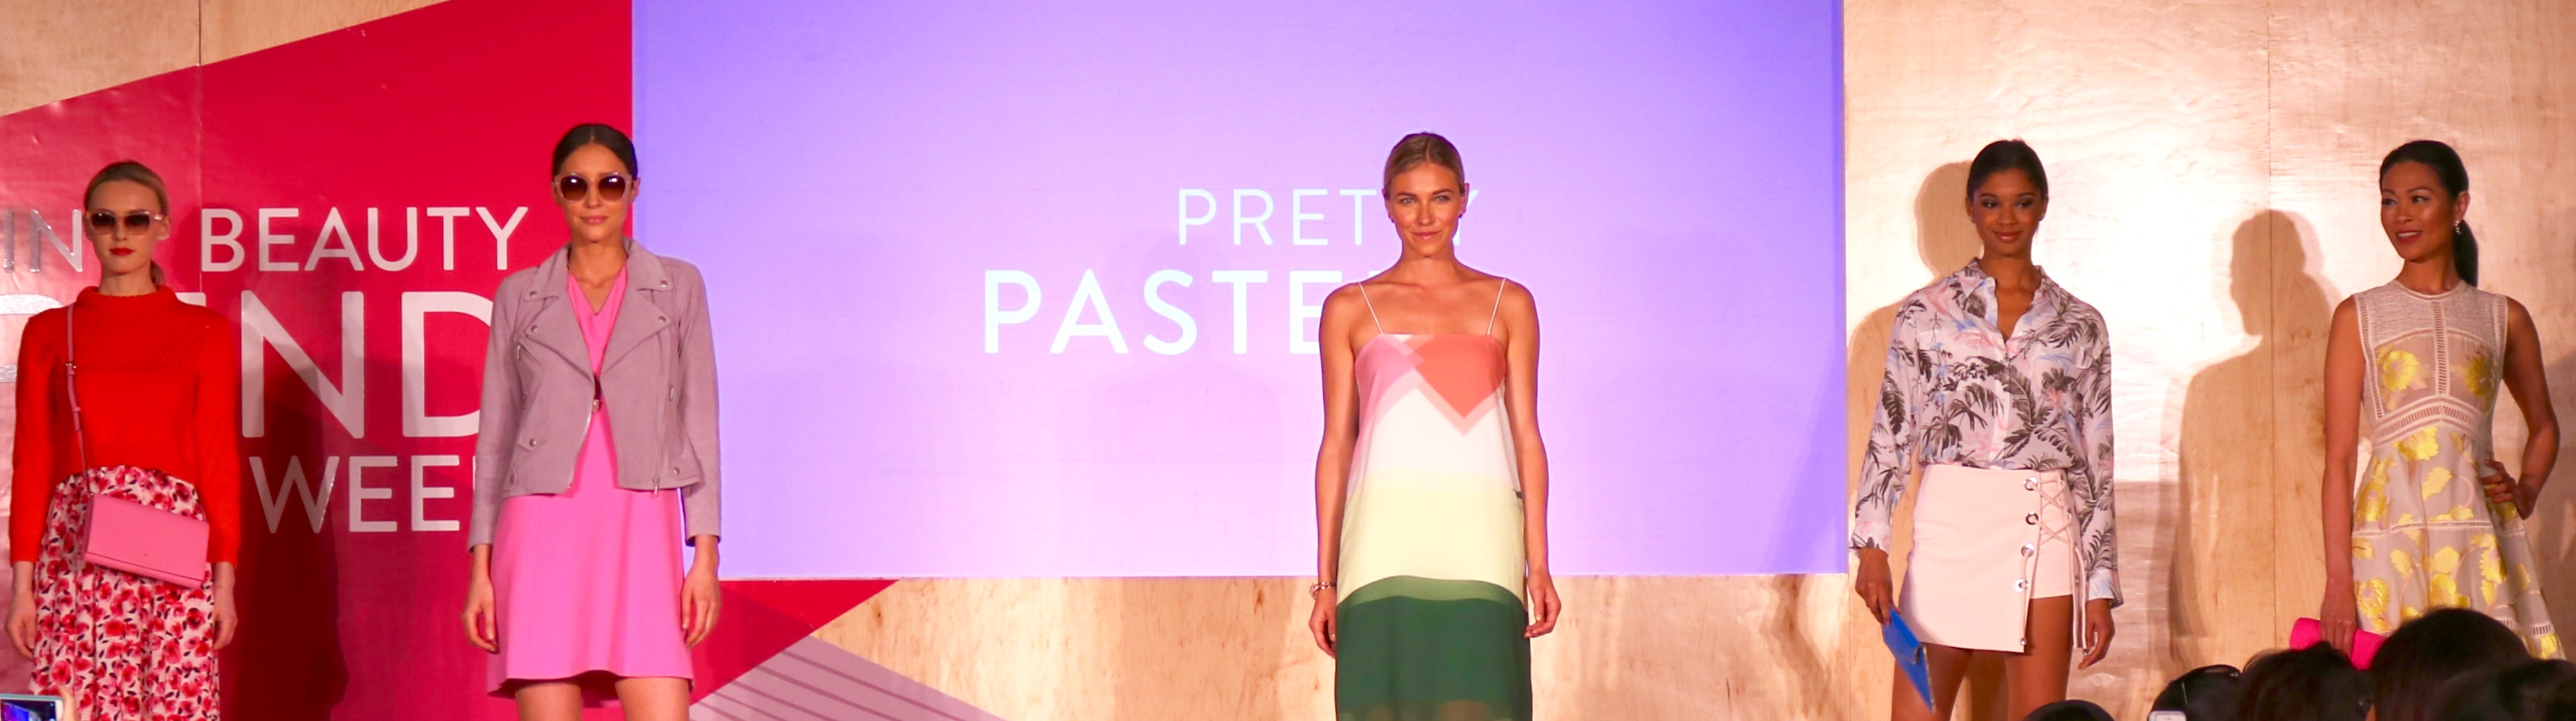 pretty pastels Nordstrom Beauty Trend Show 2016 Spring Bowtiful Life 3